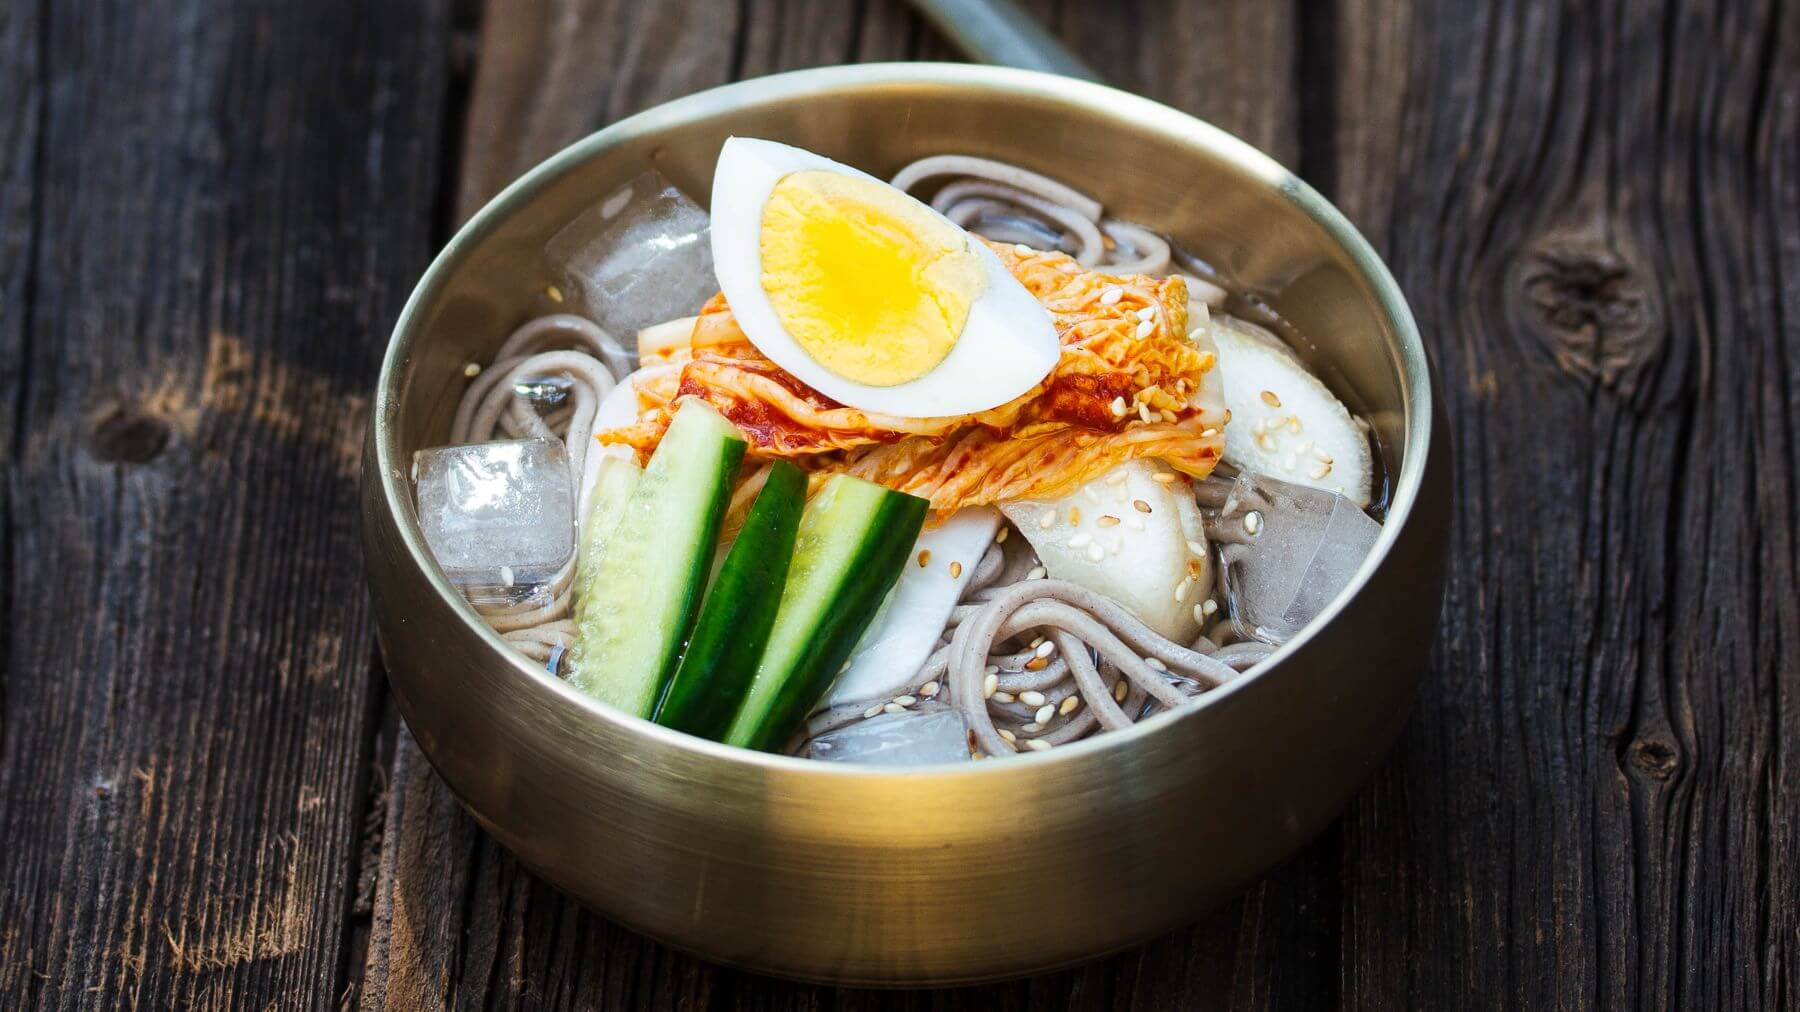 Sommerliche Nudelsuppe aus Korea - Mul-Naengmyeon